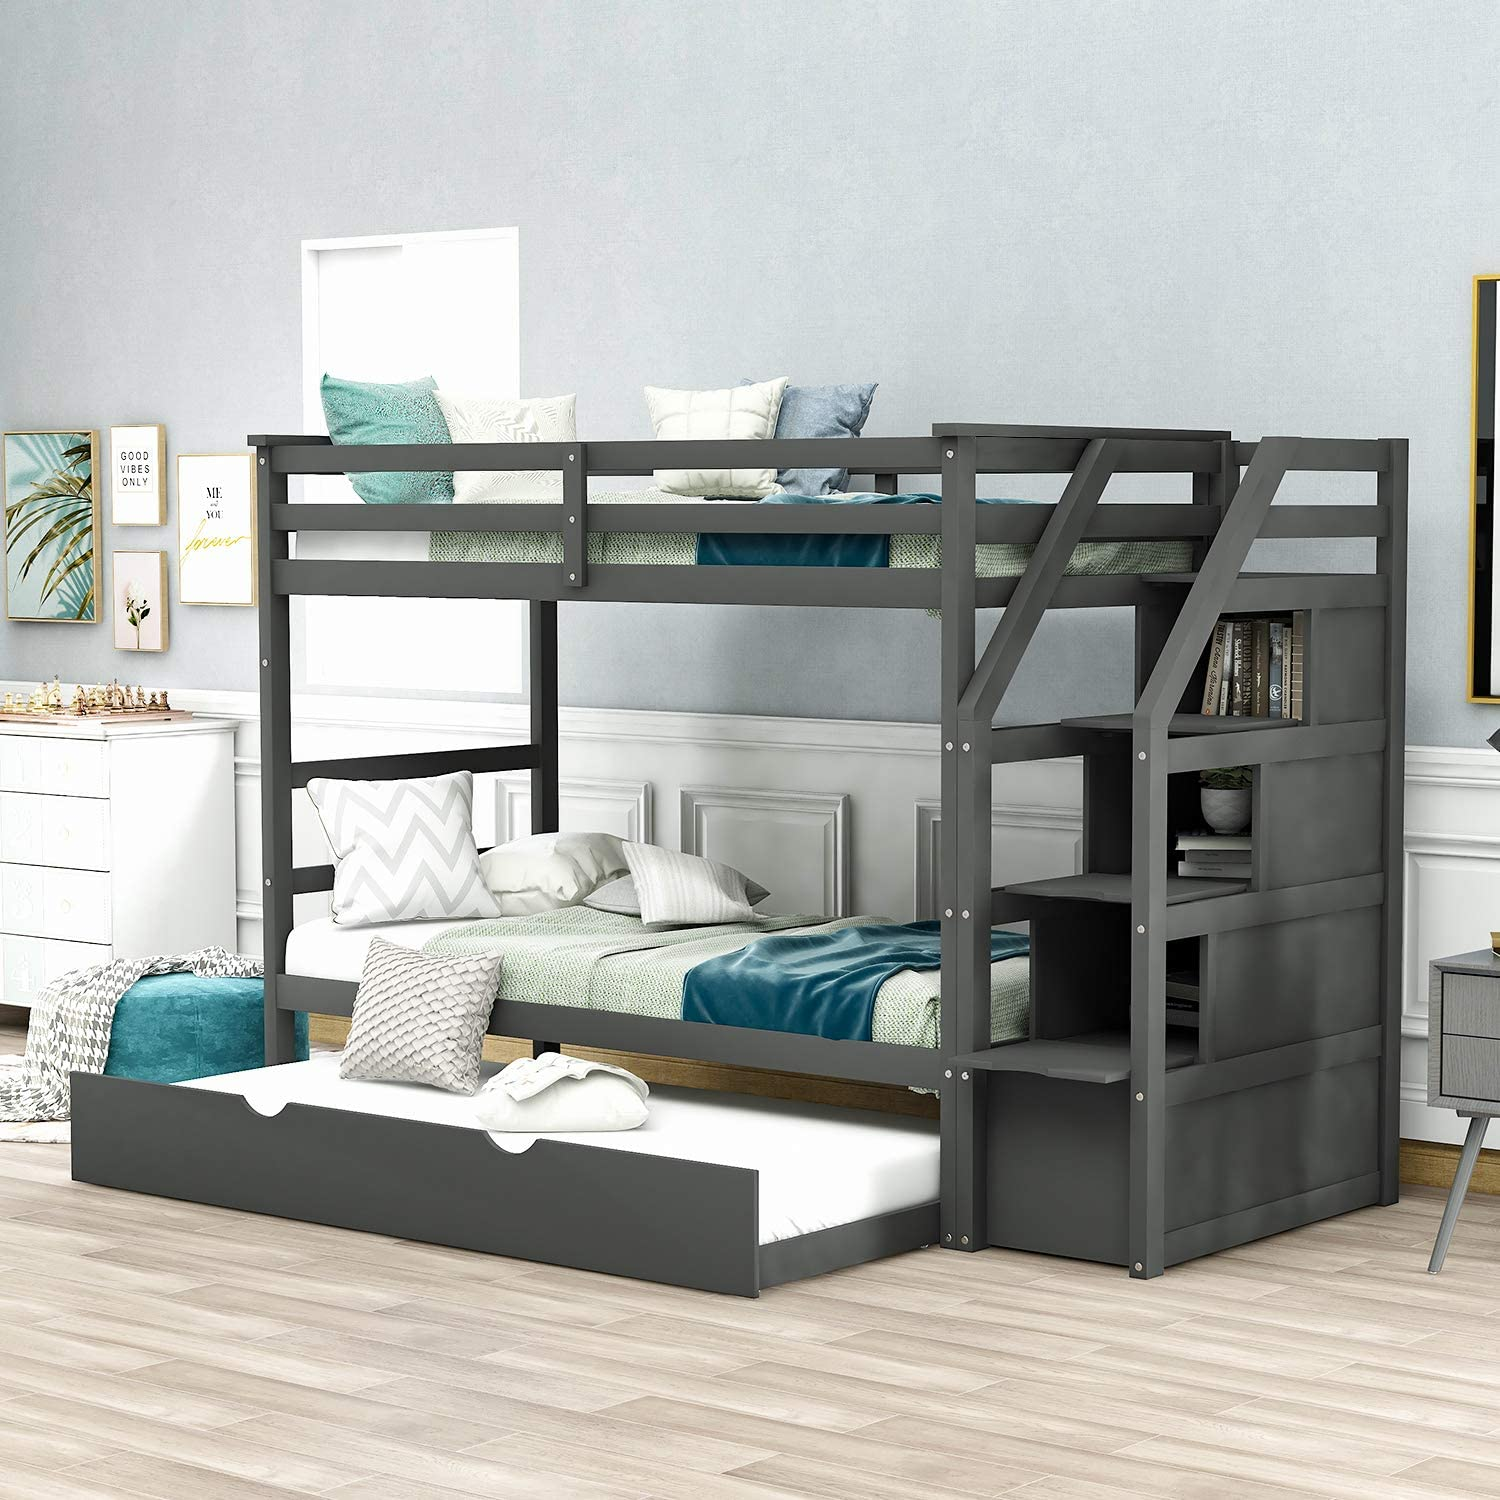 Buy Merax Solid Wood Twin Over Twin Bunk Bed Trundle Bunk Bed With 3 Storage Drawers Staircase And Safety Guard Rail For Boys Girls Teens And Adults Grey Online In Indonesia B08dl619kn